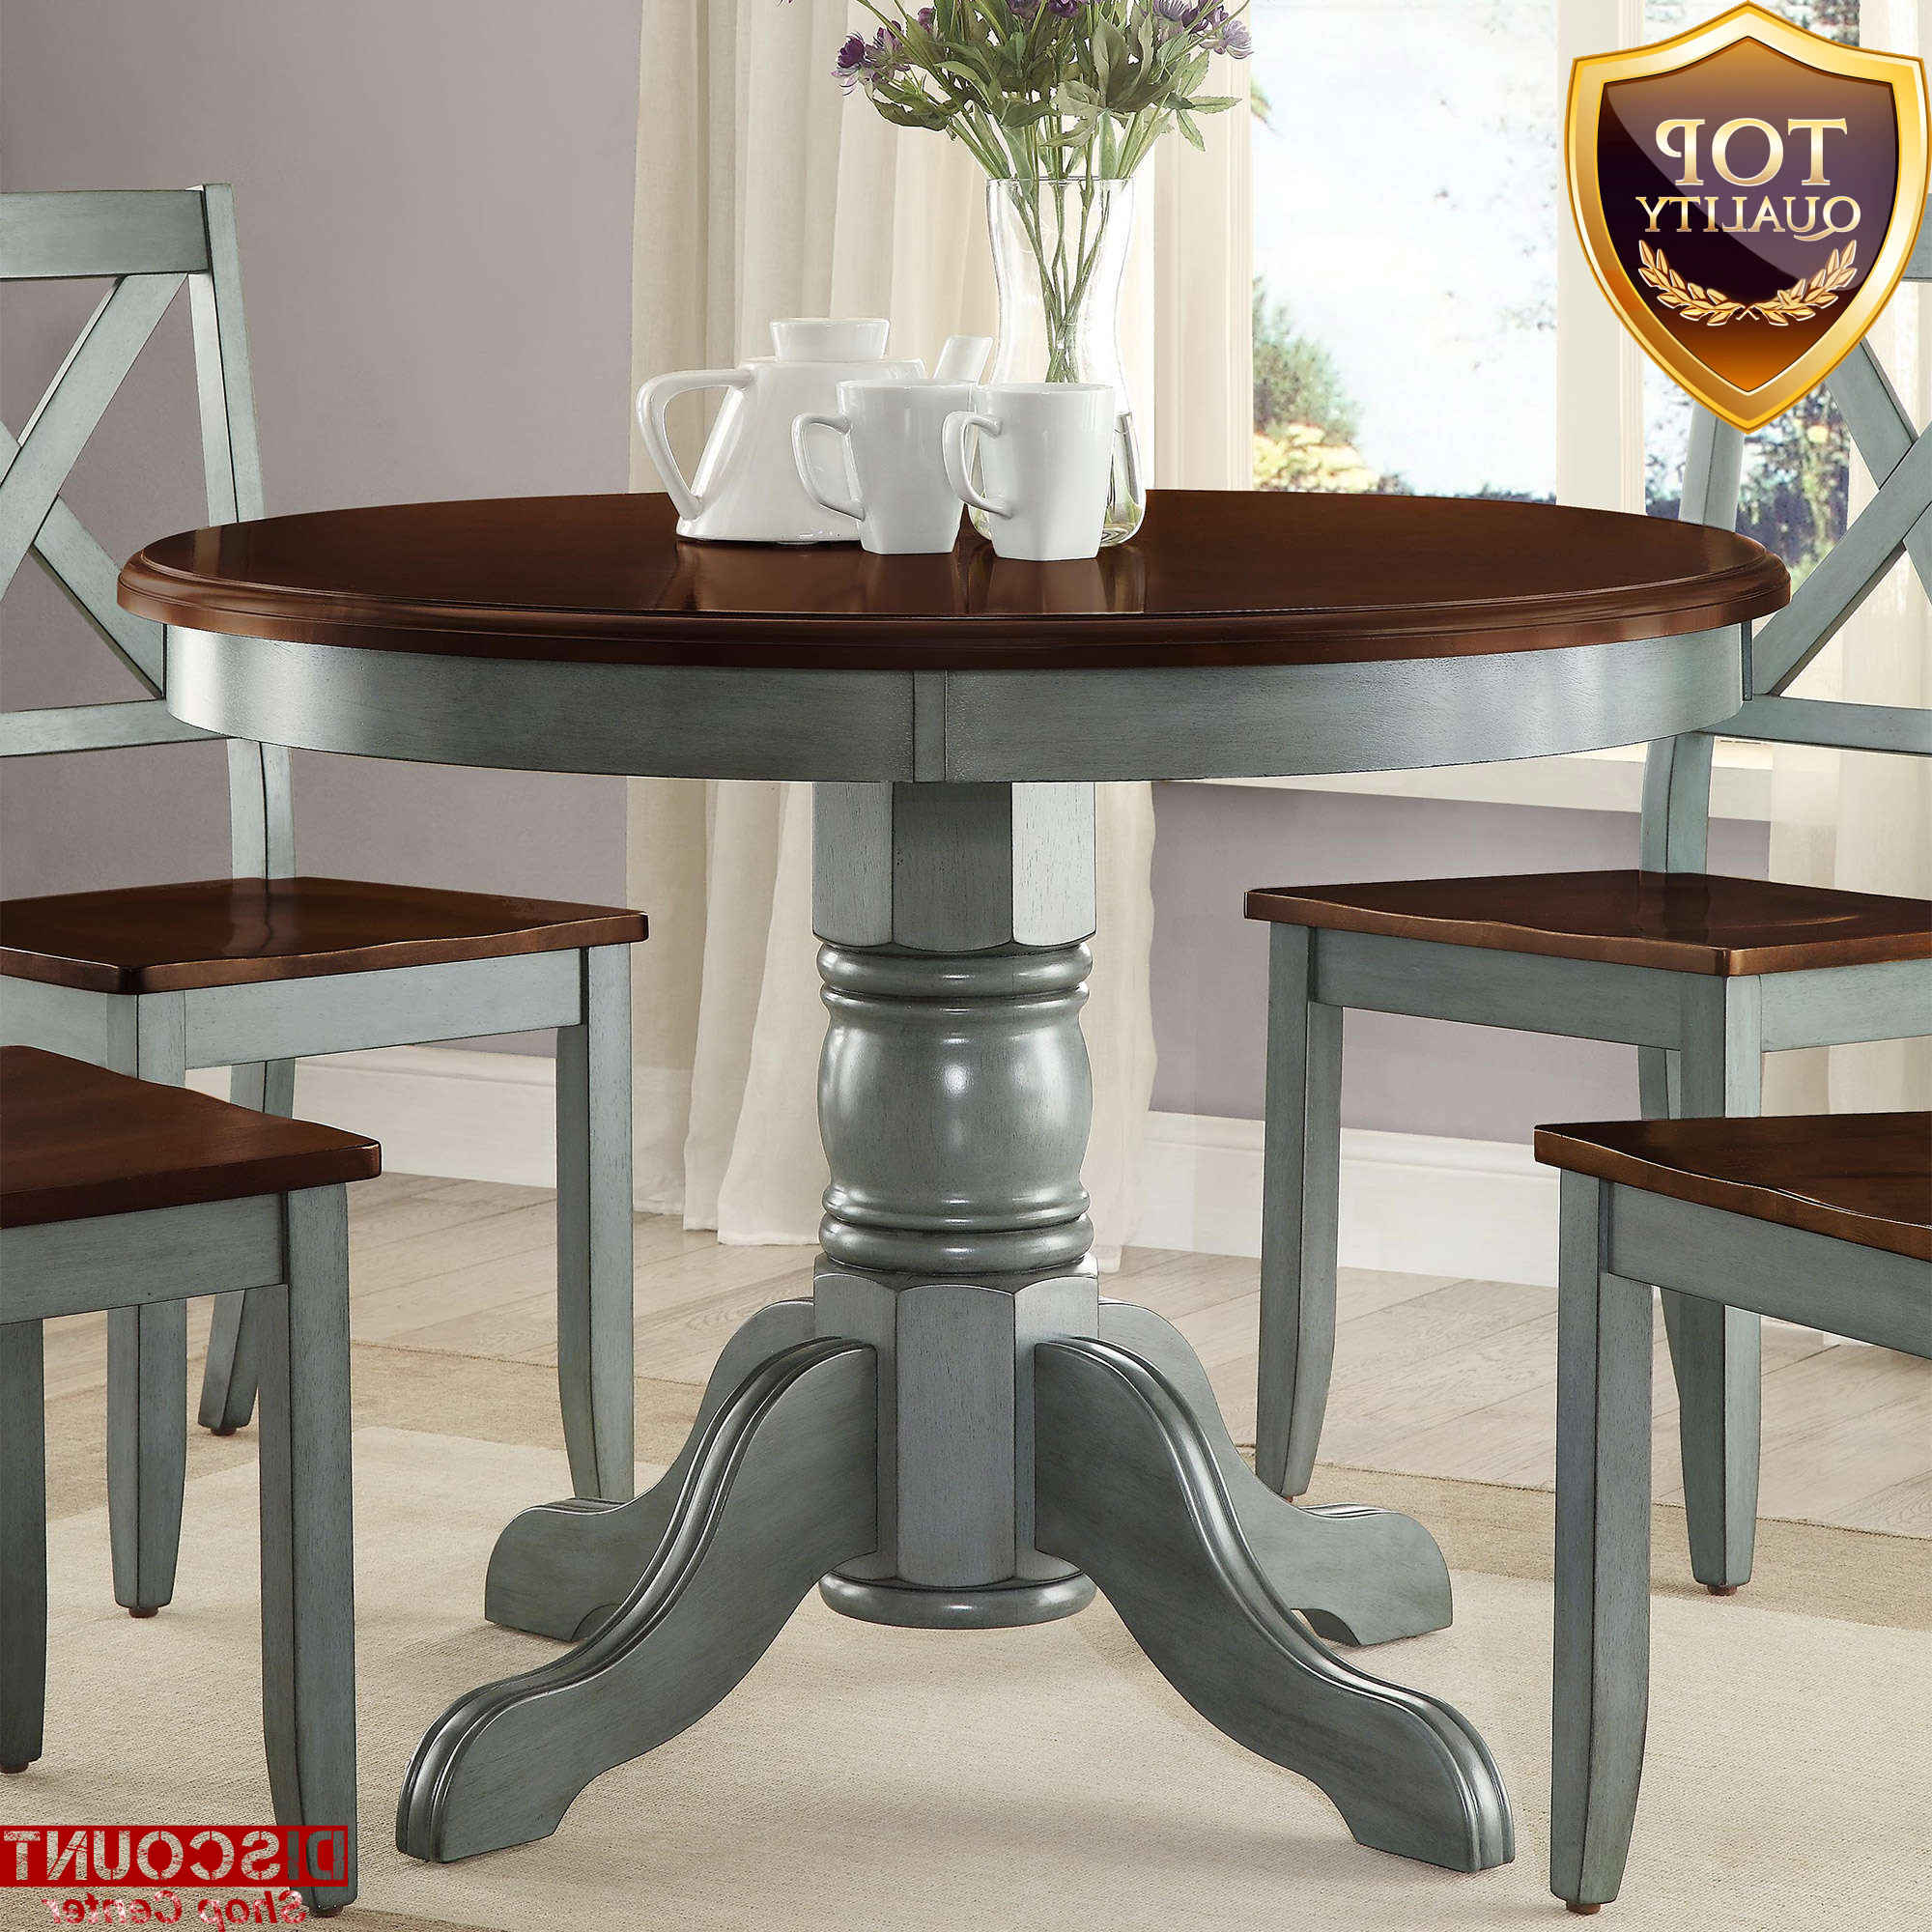 Remarkable Expandable Round Dining Table Spin Room Furniture intended for Most Recently Released Modern Farmhouse Extending Dining Tables